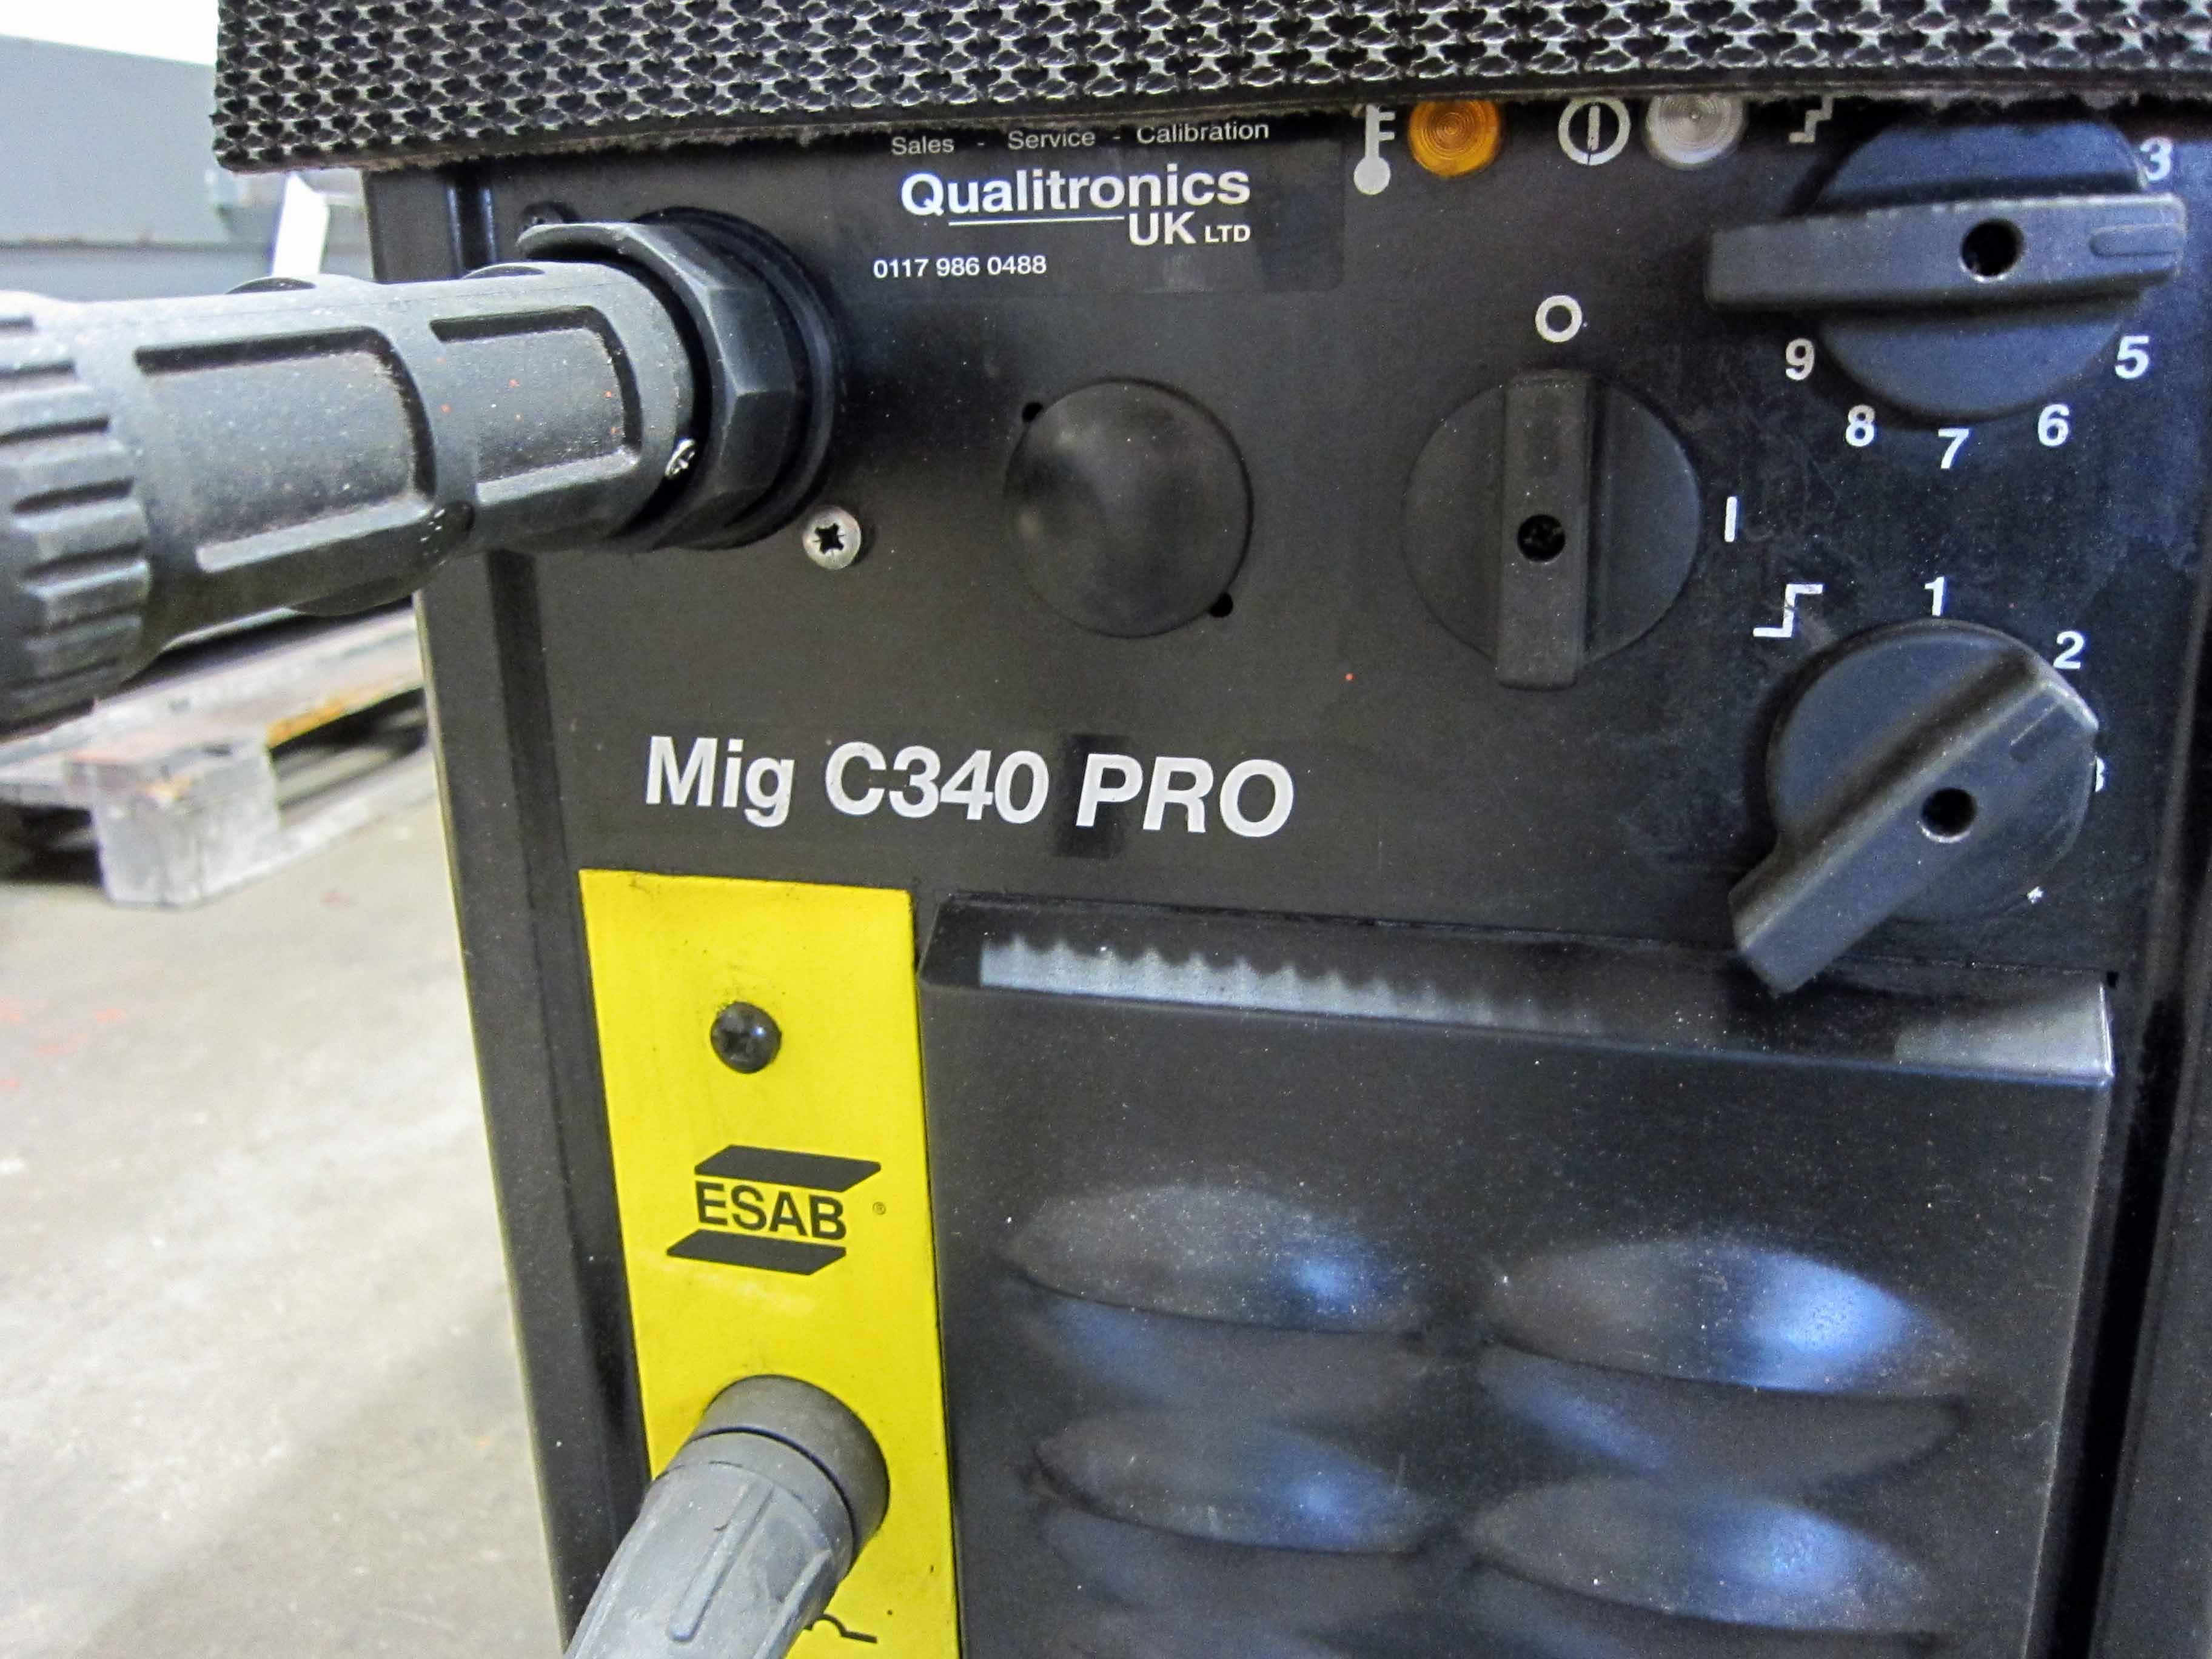 An ESAB Model C340 Pro Mig Weld Serial No. 627-405-1654 complete with Gun, Earth Lead and Argon - Image 4 of 6